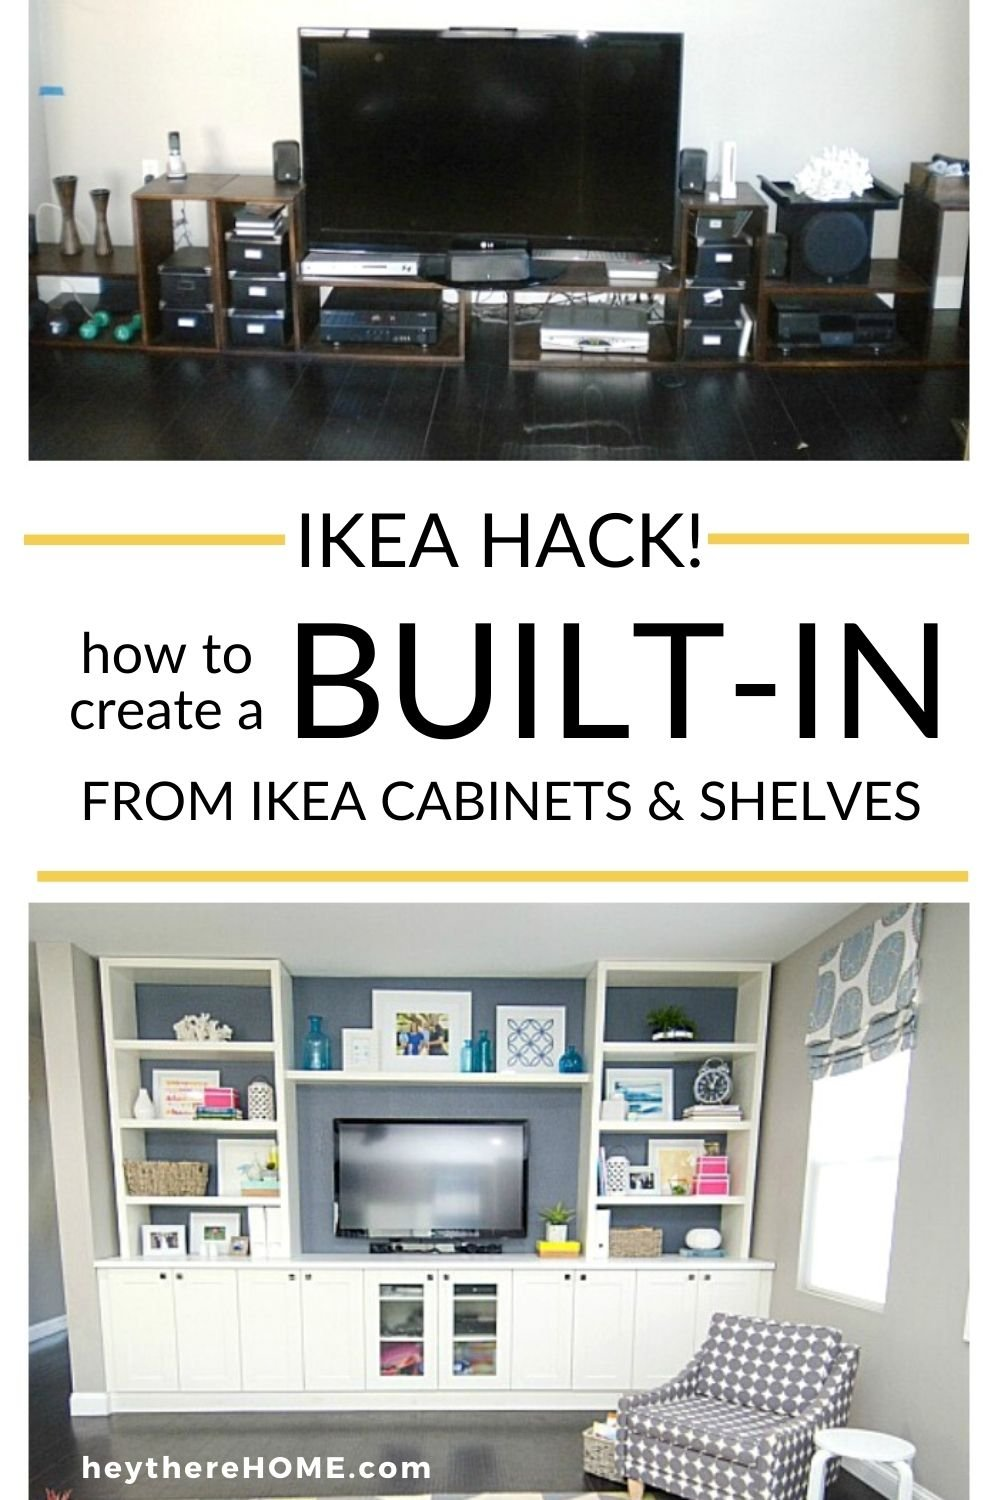 How to create a Builtin